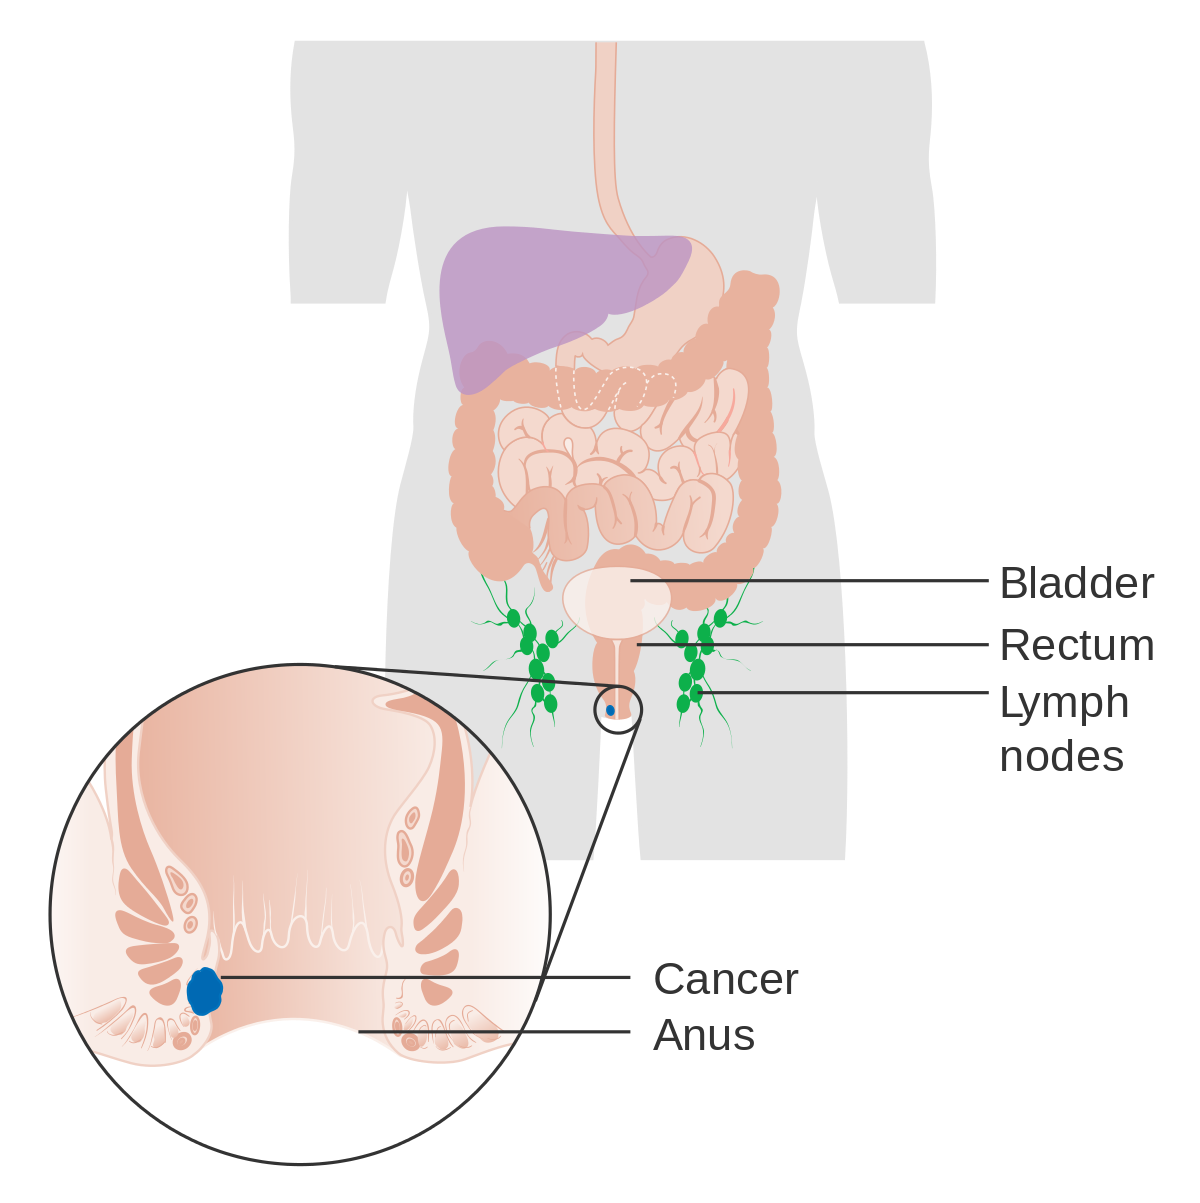 ovarian cancer vs fibroids